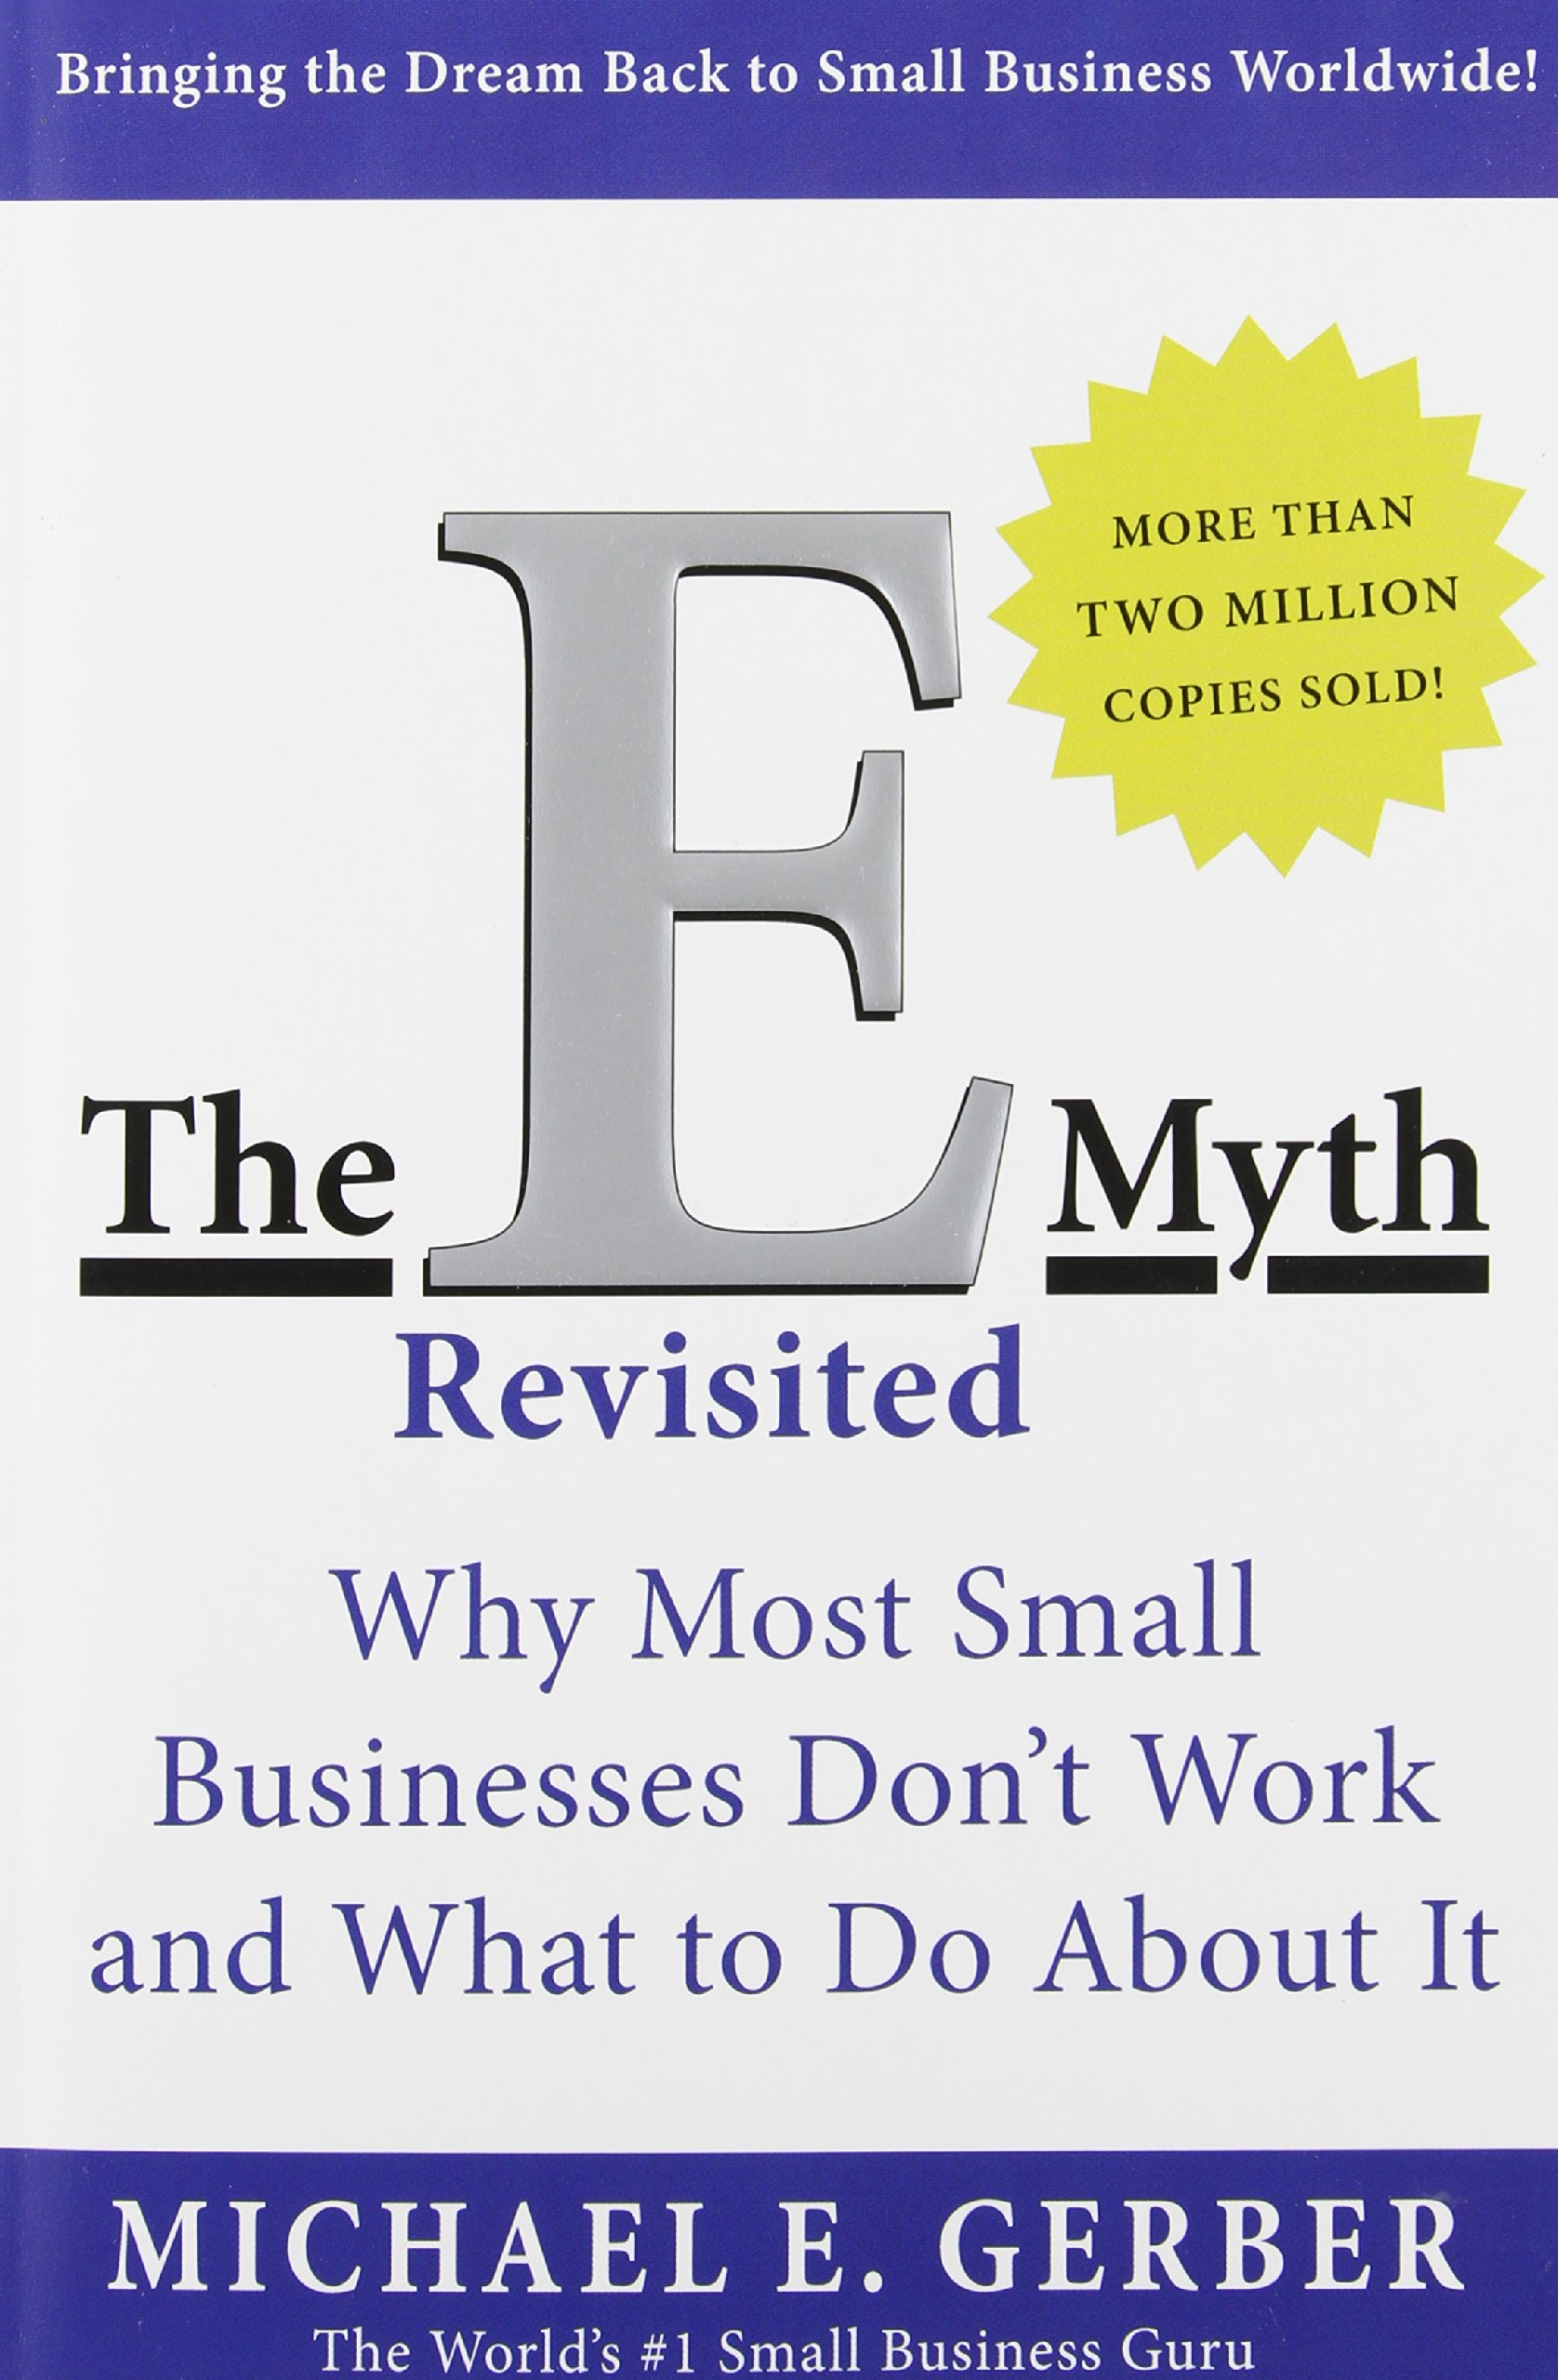 The E-Myth Revisited - Why Most Small Businesses Don't Work